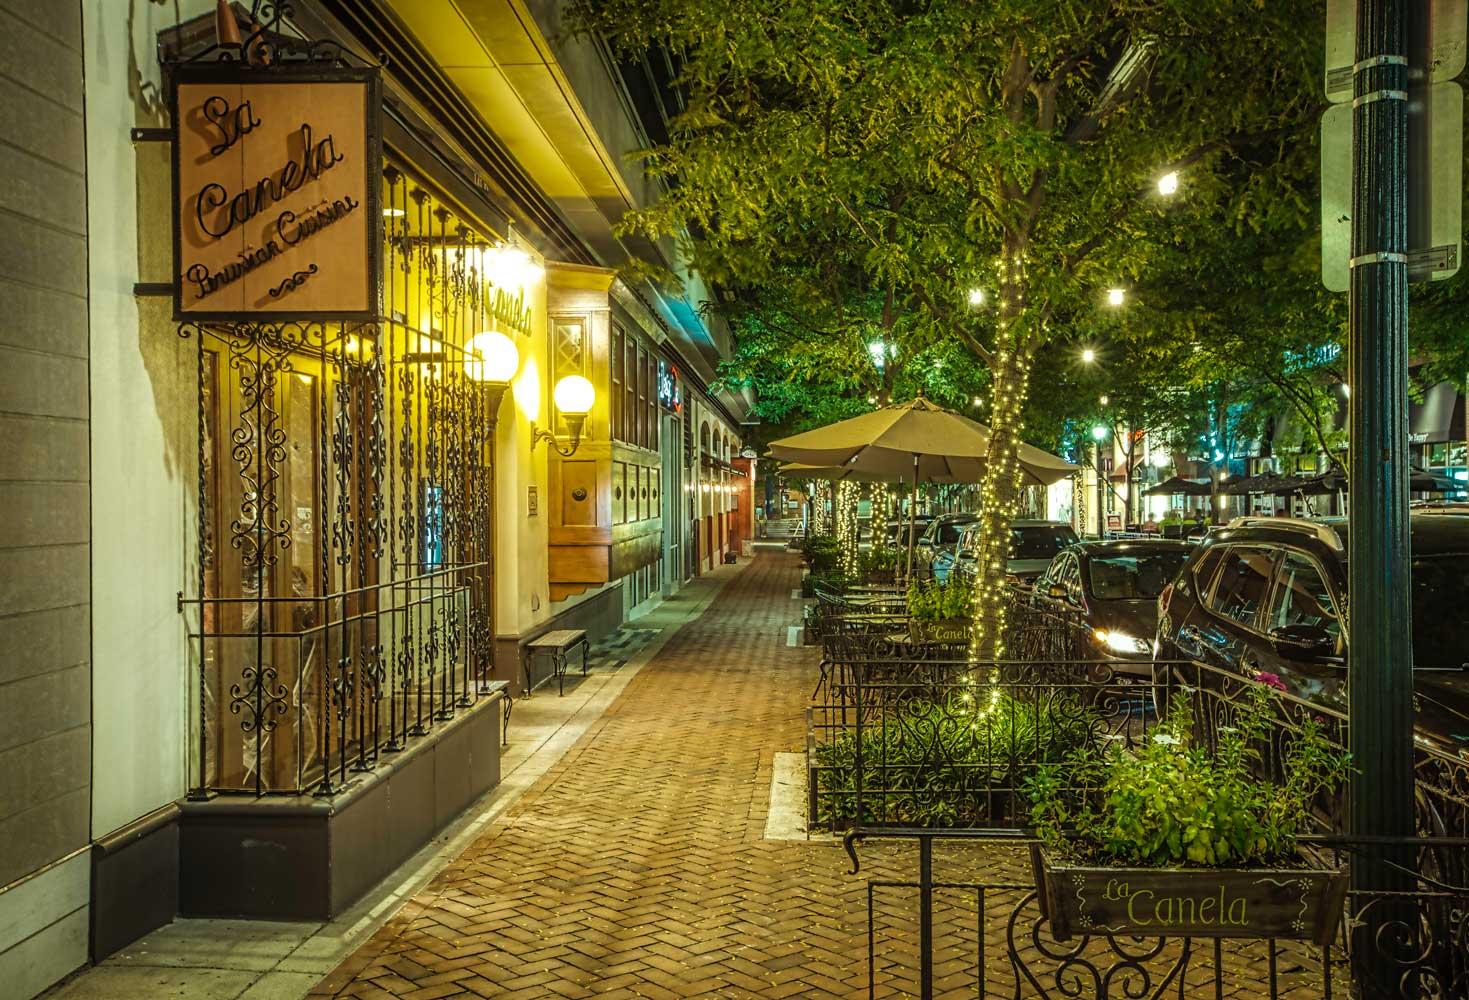 Rockville Town Square is 10 minutes from Village Square West Apartments